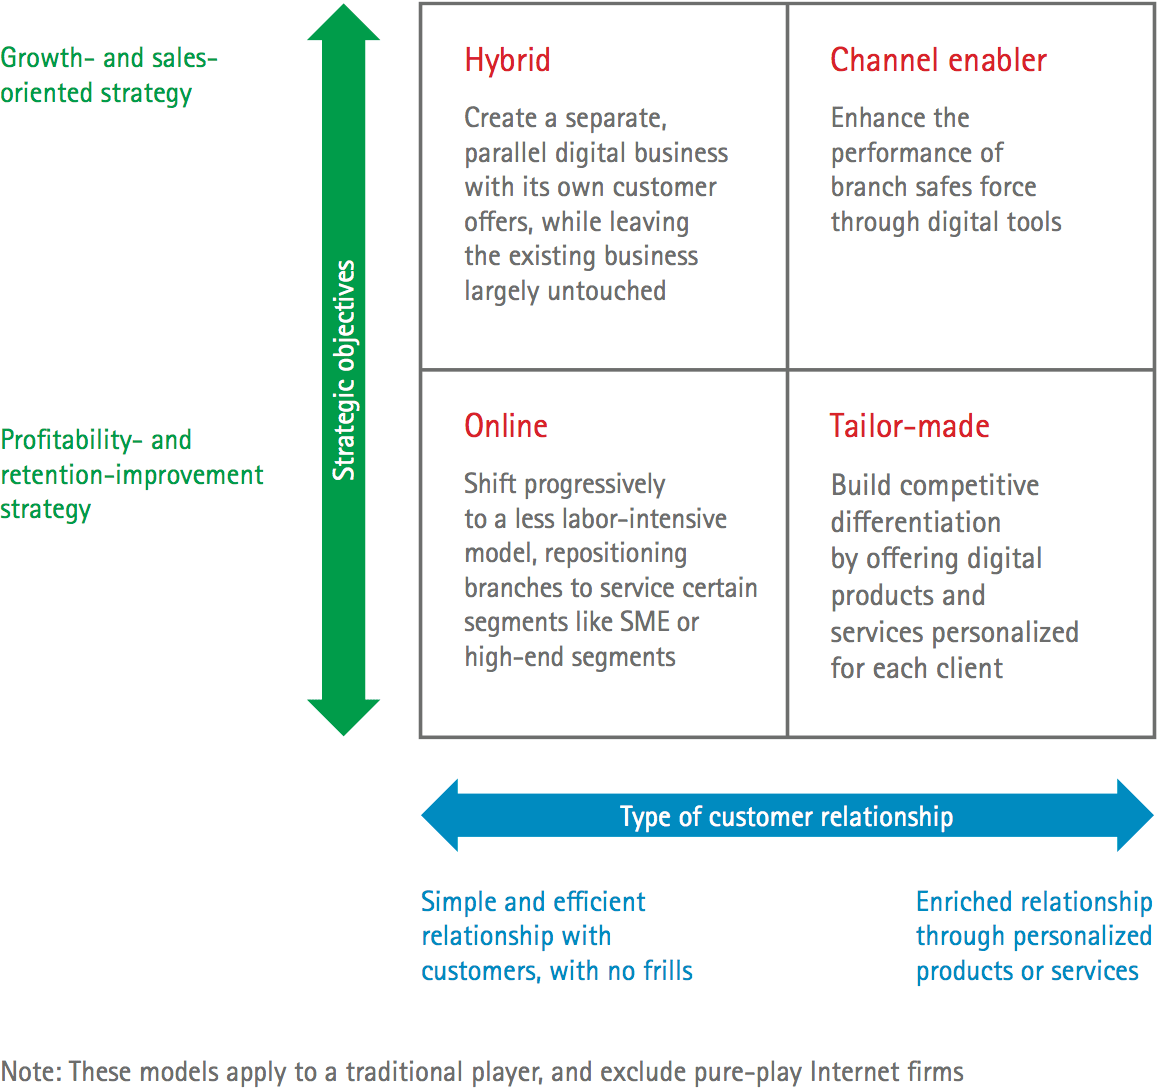 Matrix of customer relationships and business strategy